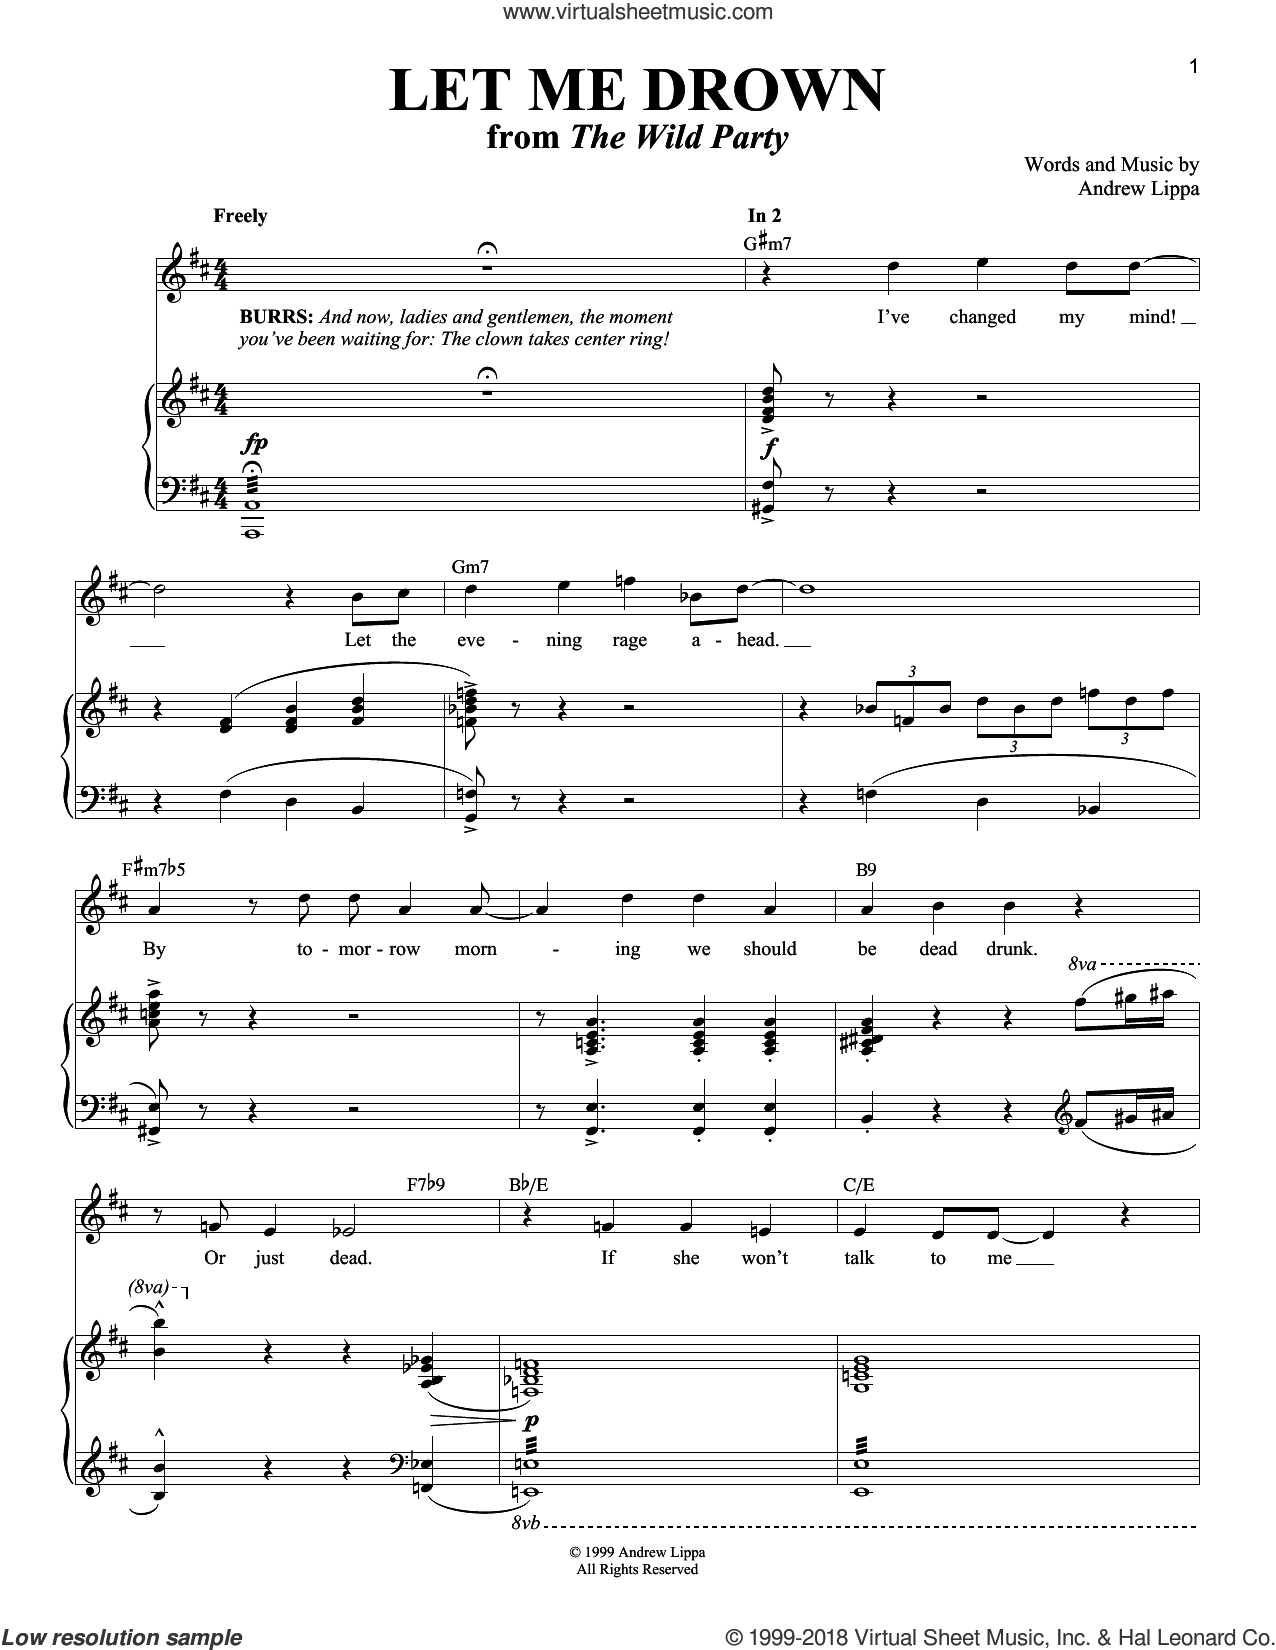 Let Me Drown sheet music for voice and piano by Andrew Lippa and Richard Walters, intermediate skill level